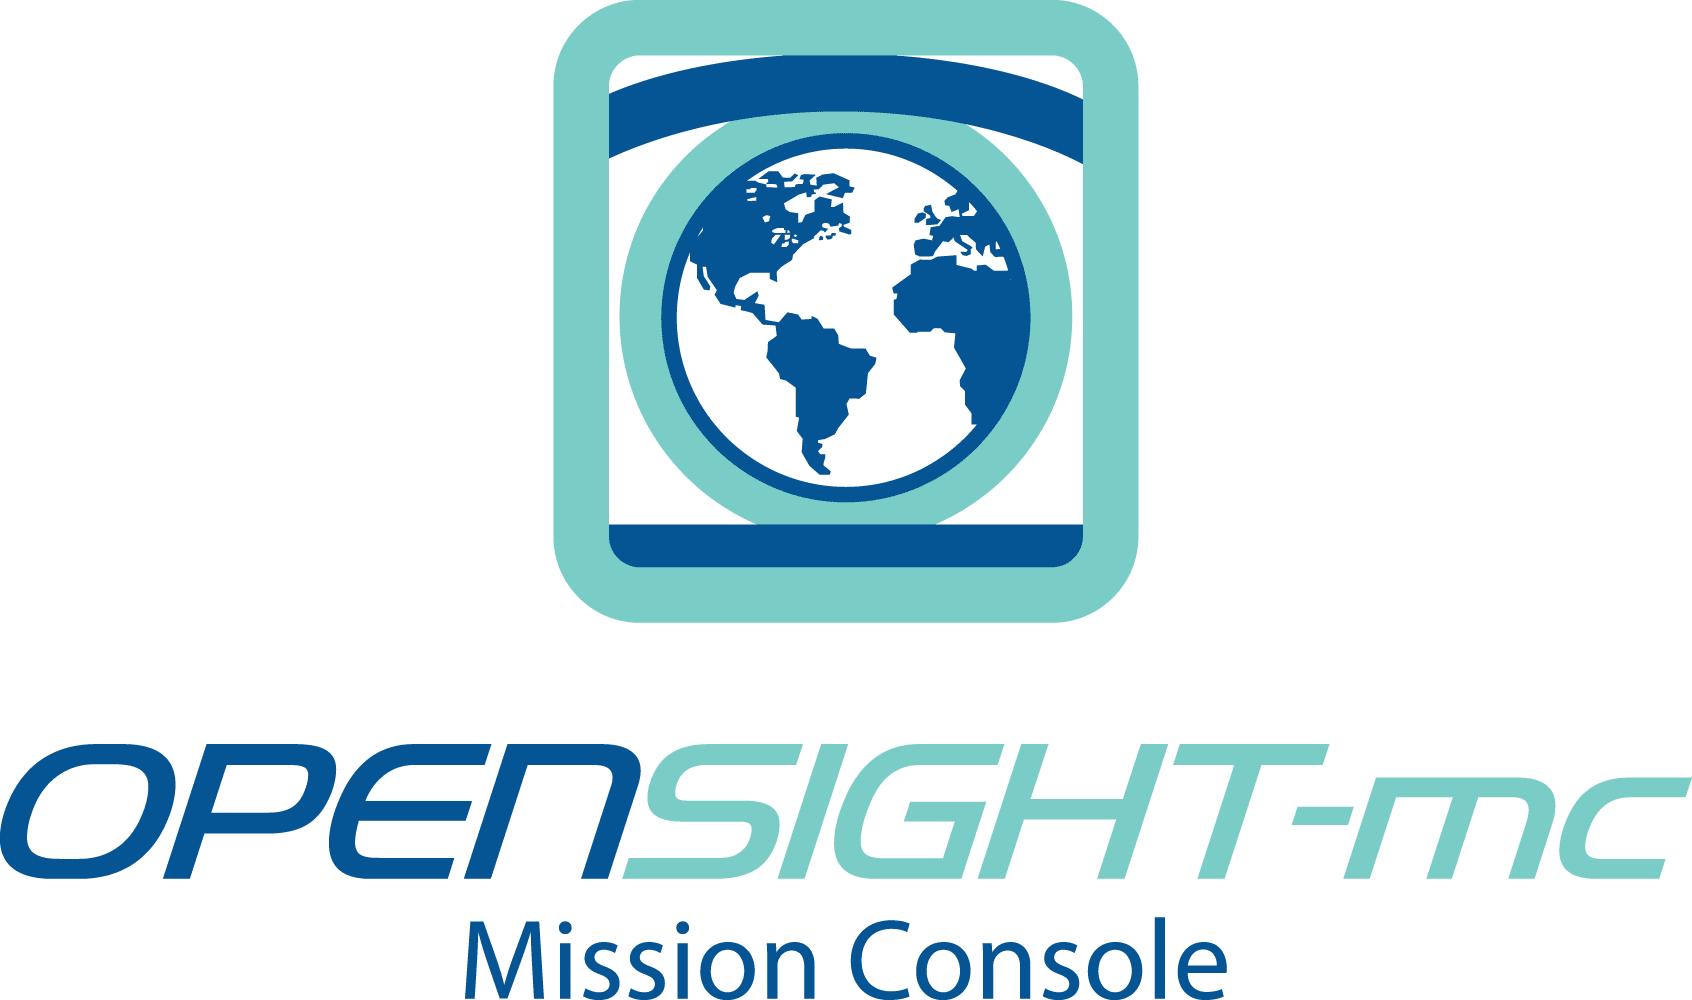 OpenSight Mission Console Logo